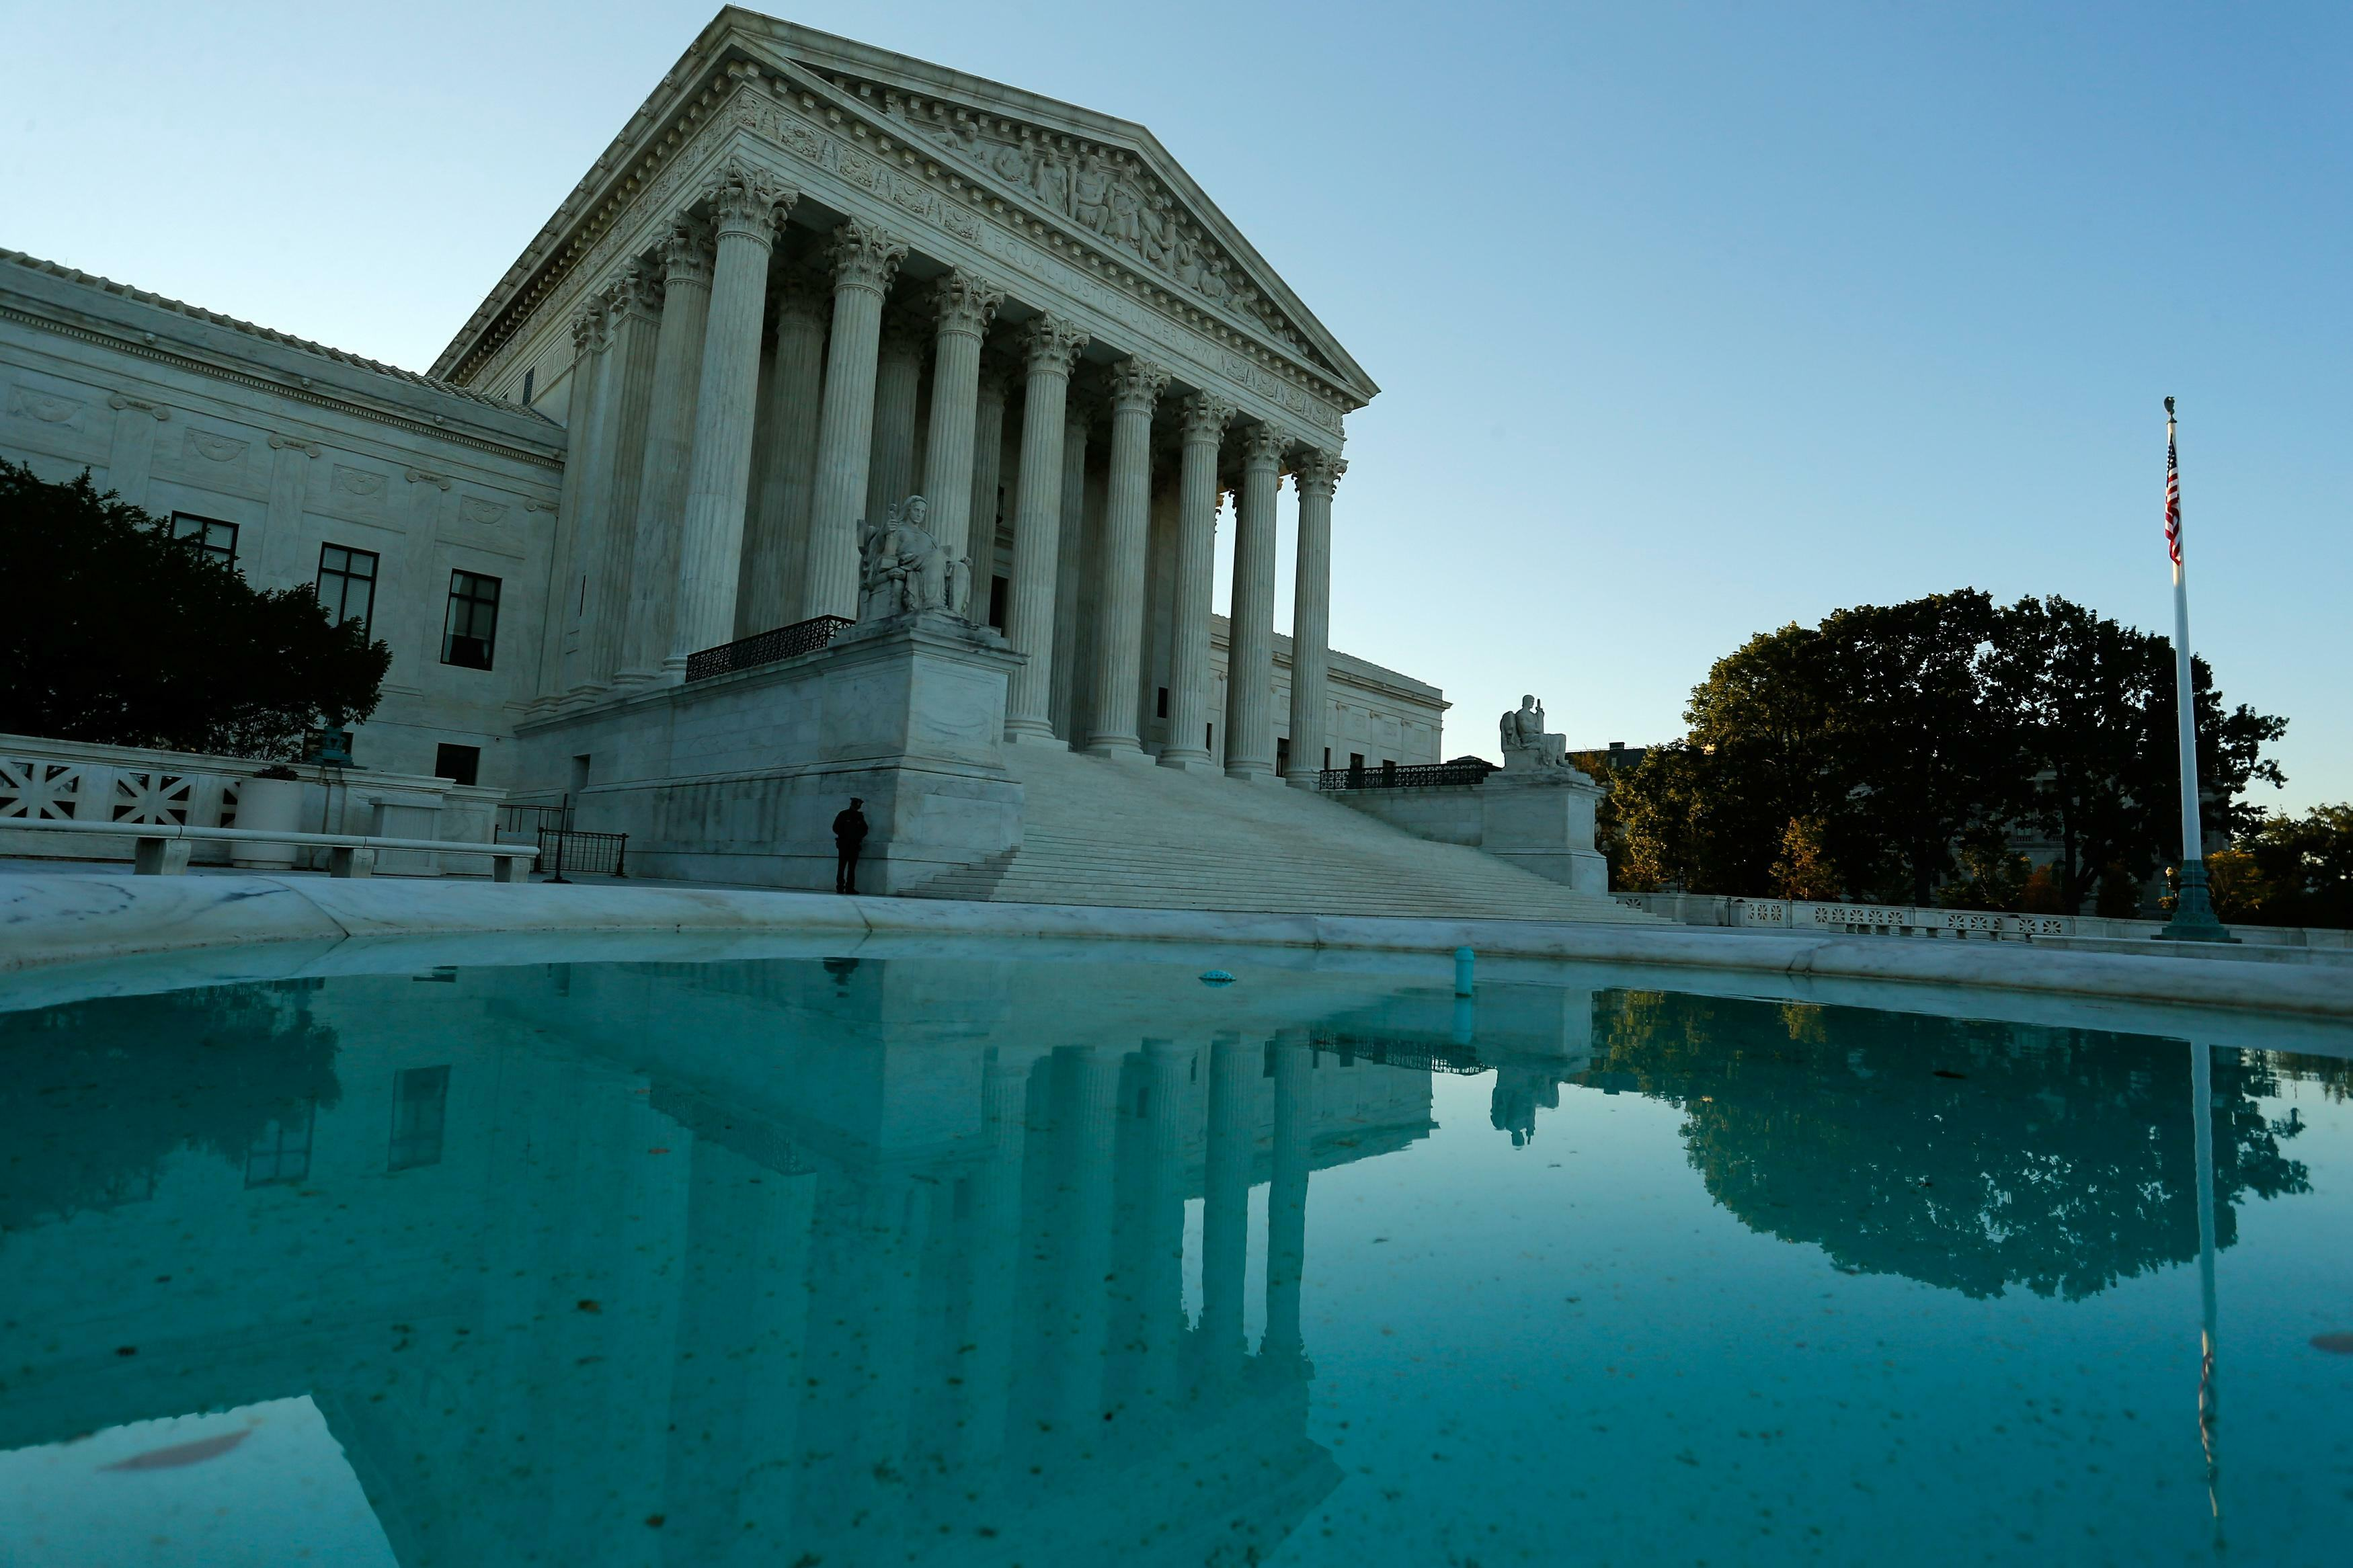 Bribery tangles with politics at the US Supreme Court